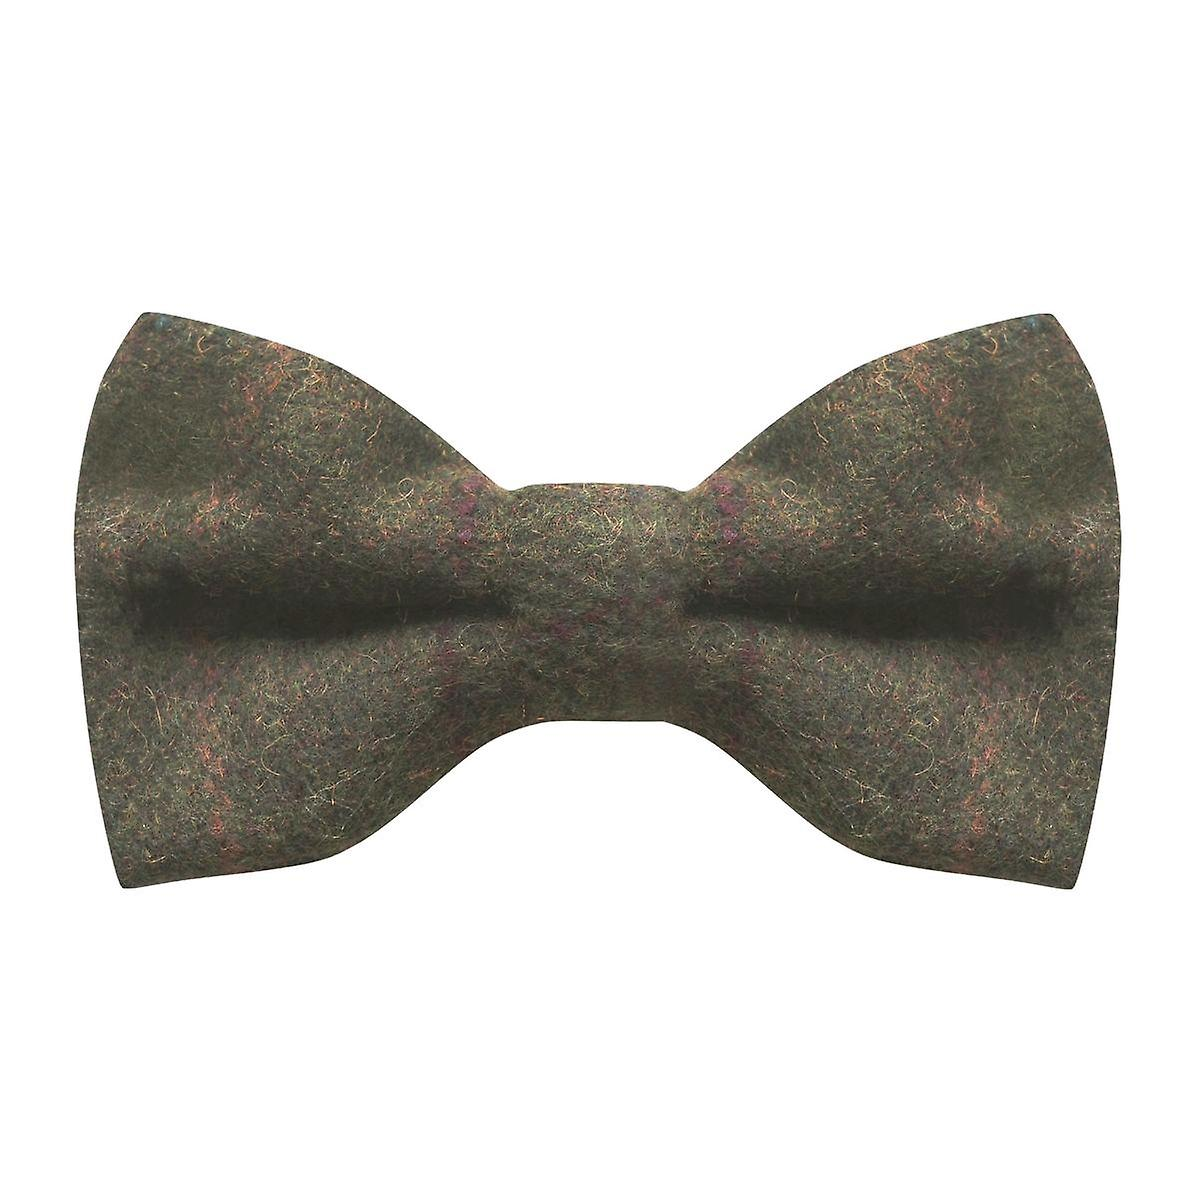 Heritage Check Moss Green Bow Tie, Tweed, Country Bow Tie